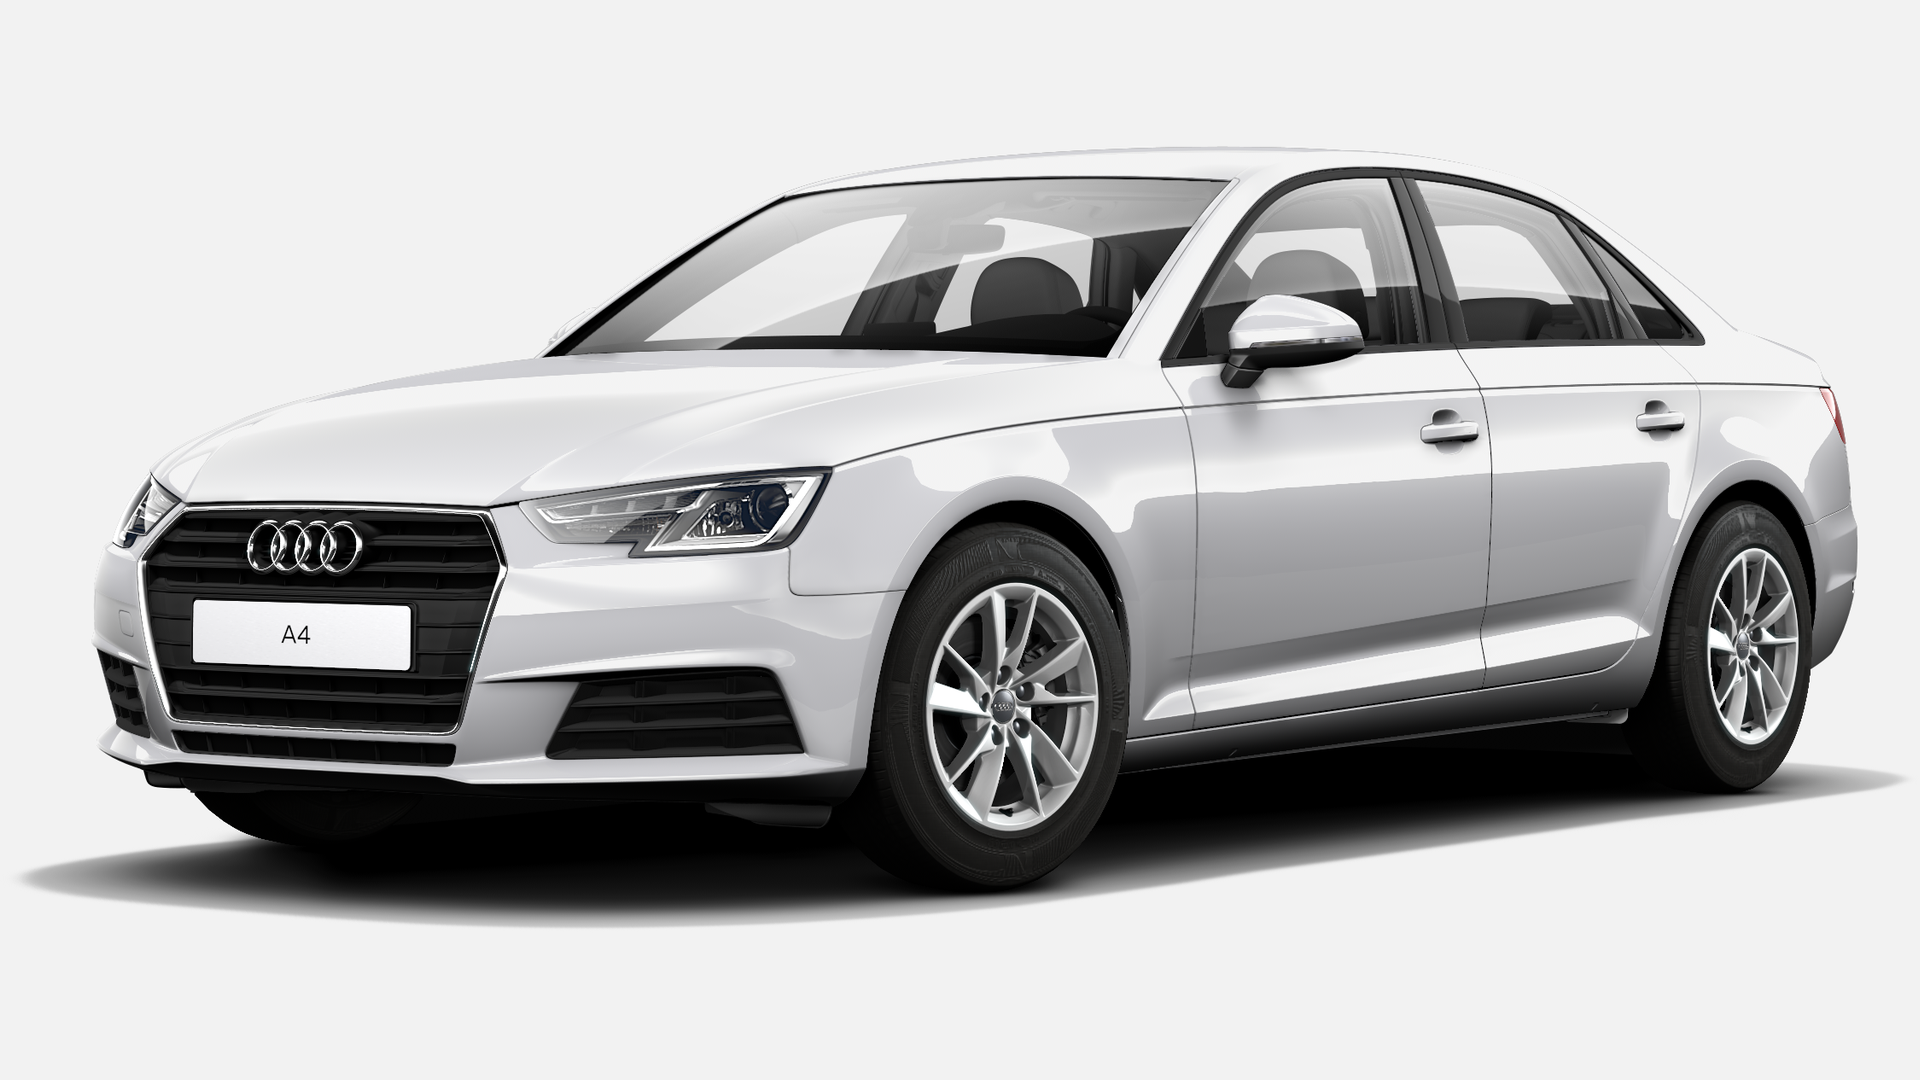 Audi A4 1.4 TFSI Advanced Edition 110 kW (150 CV)